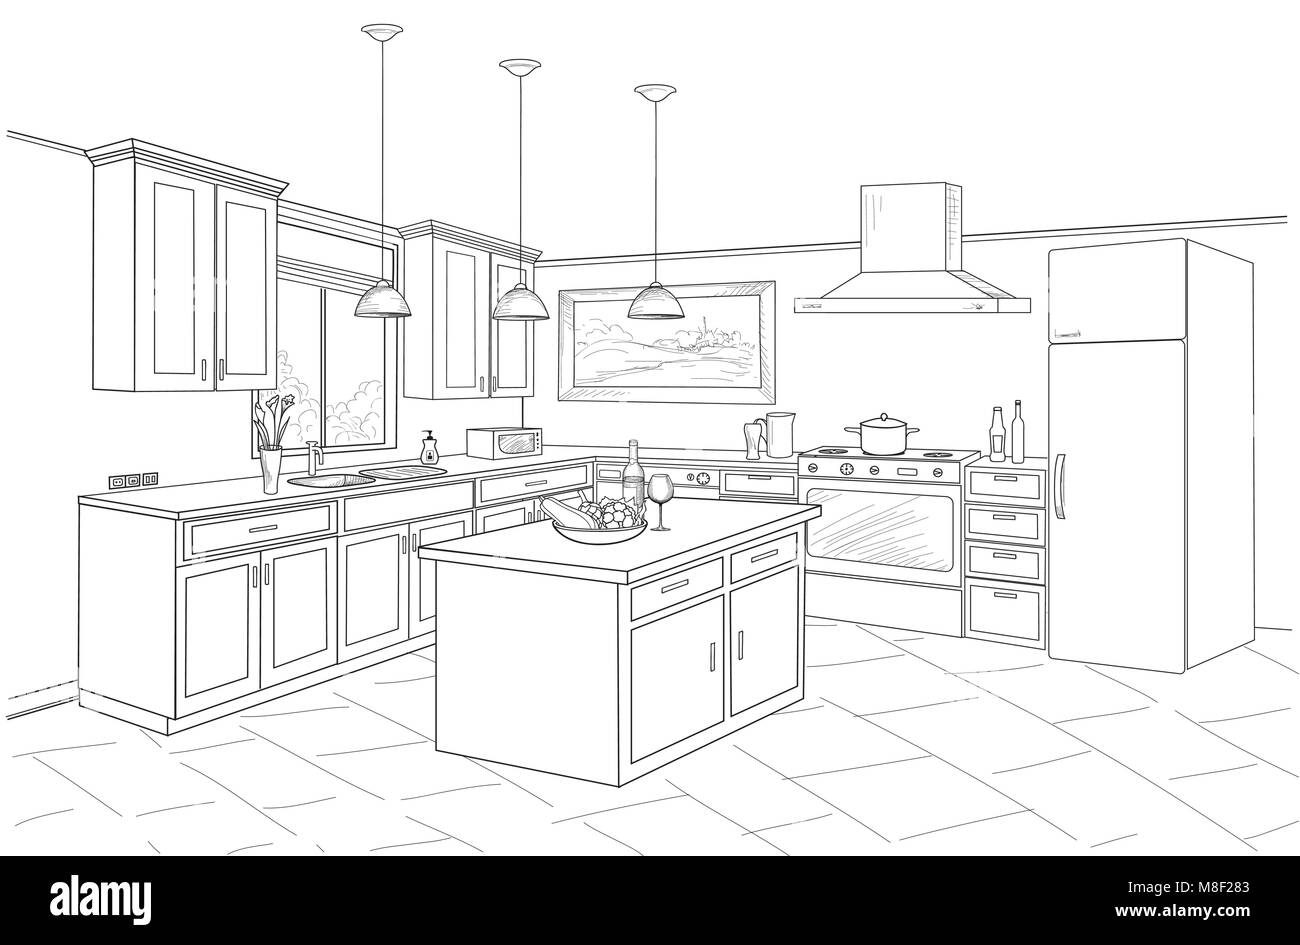 Kitchen Island With Dining Table Interior Sketch Of Kitchen Room Outline Blueprint Design